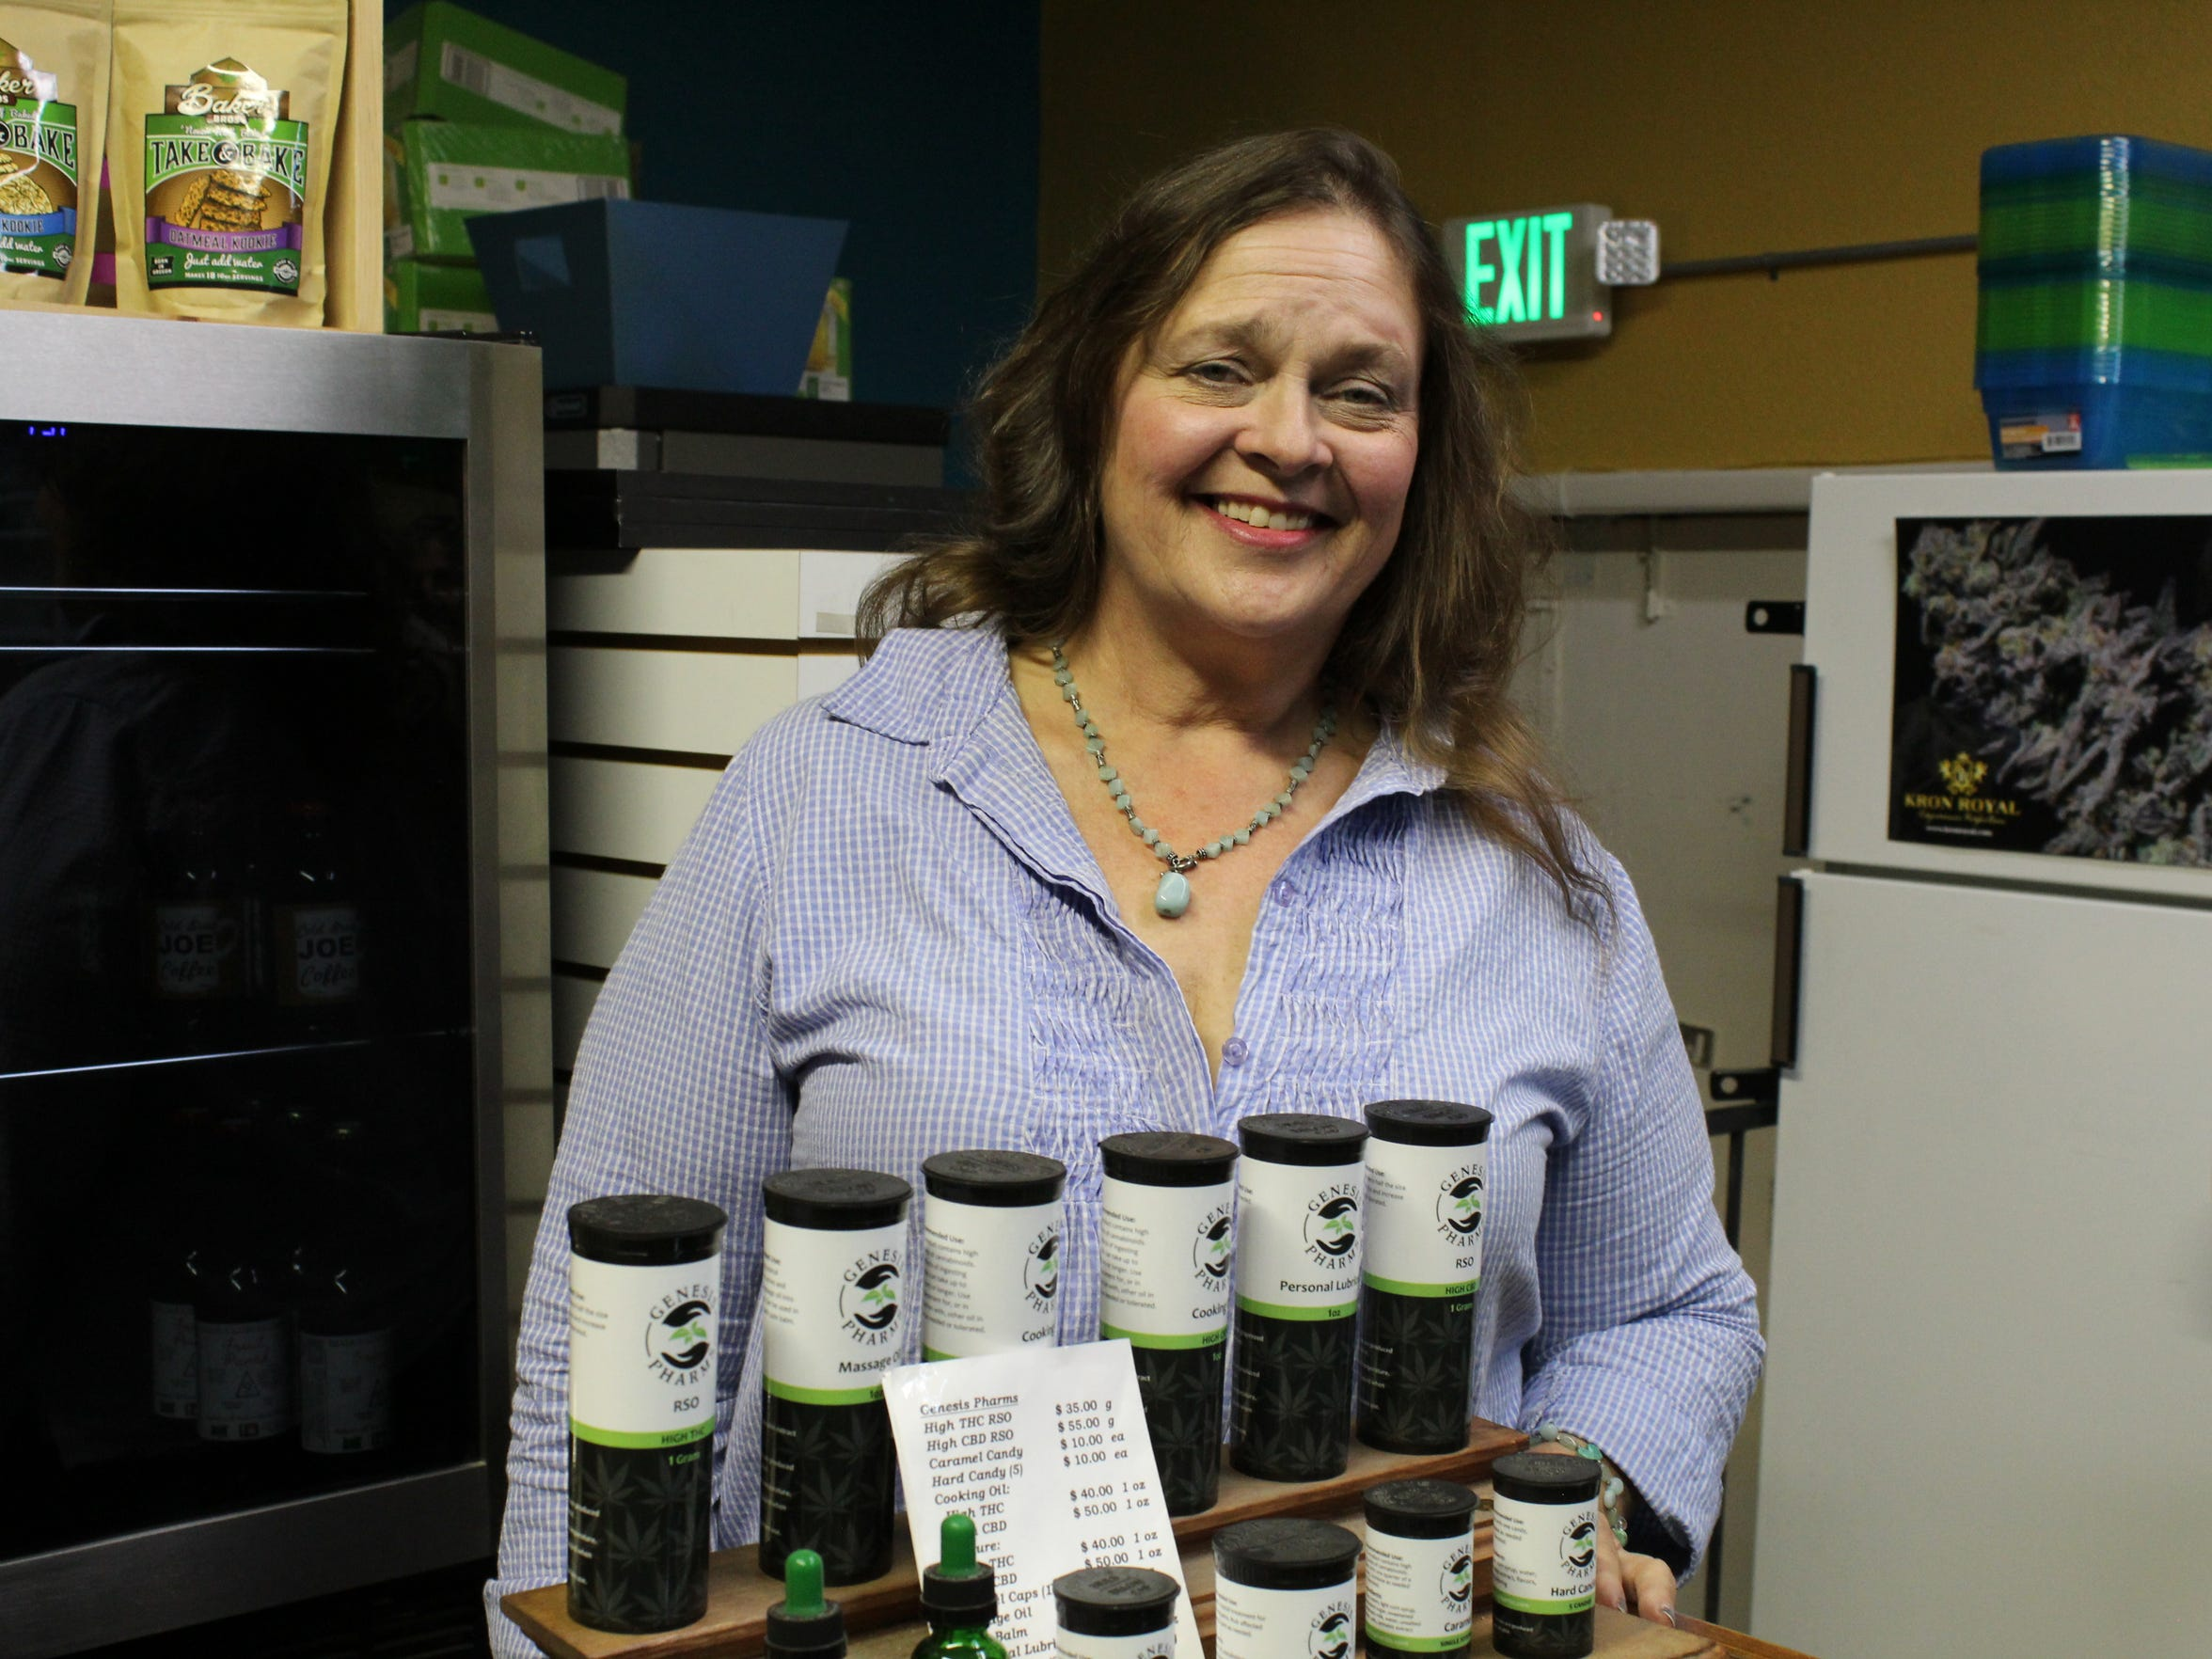 Margo Lucas, the owner of West Salem Cannabis, inside her dispensary. Lucas plans on keeping both recreational and medical once the business switches over to the new OLCC recreational program.